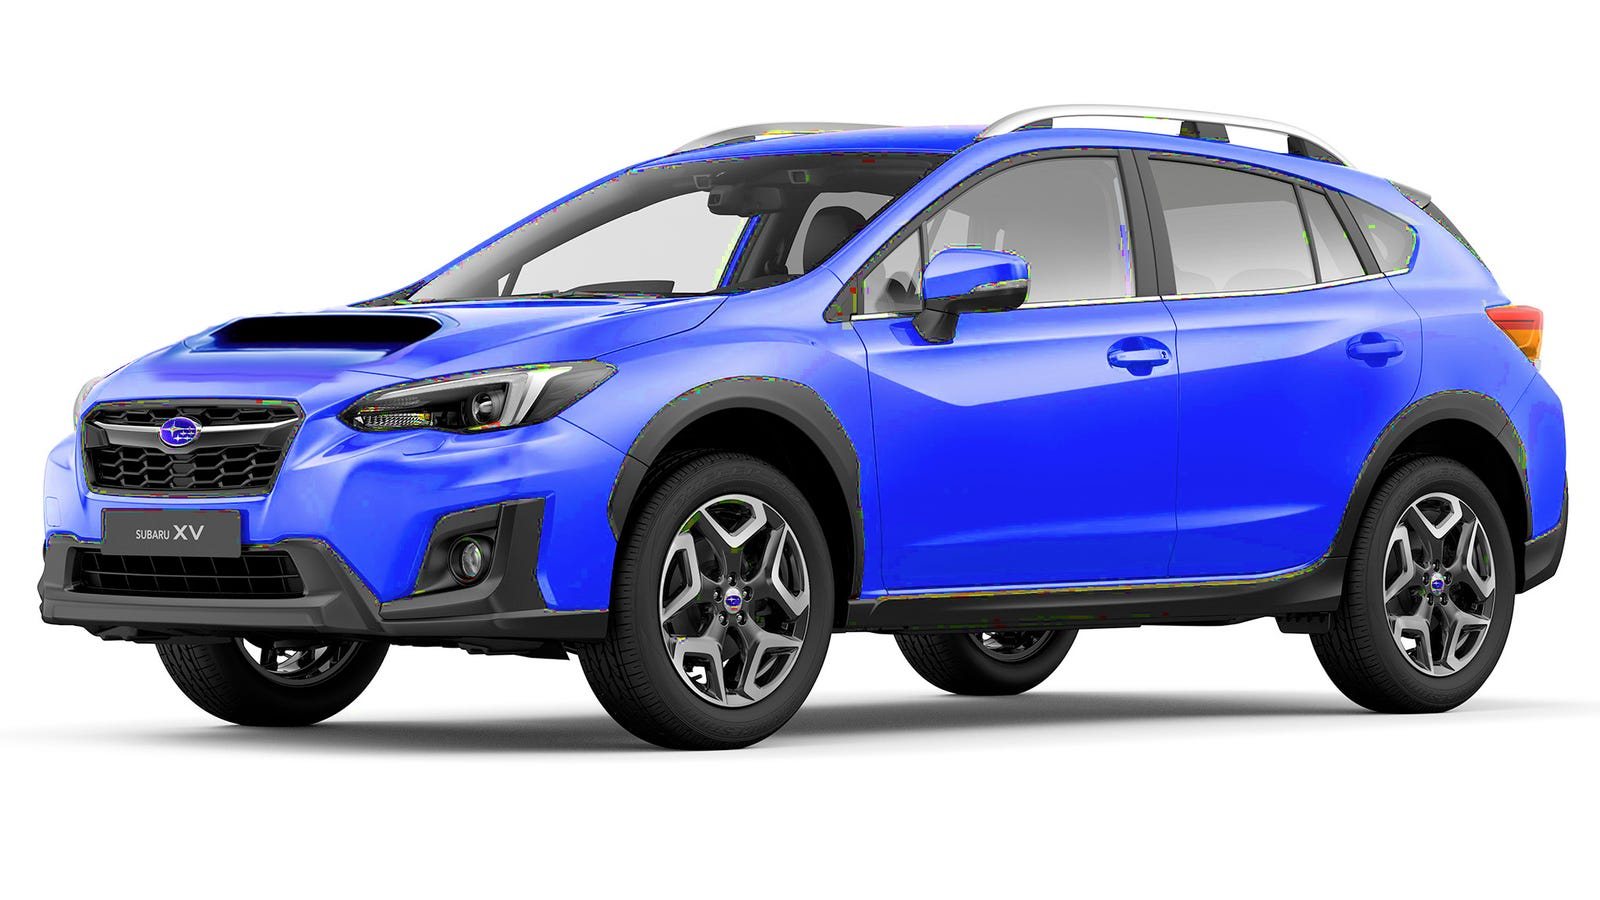 2018 subaru crosstrek sti new car release date and review 2018 amanda felicia. Black Bedroom Furniture Sets. Home Design Ideas